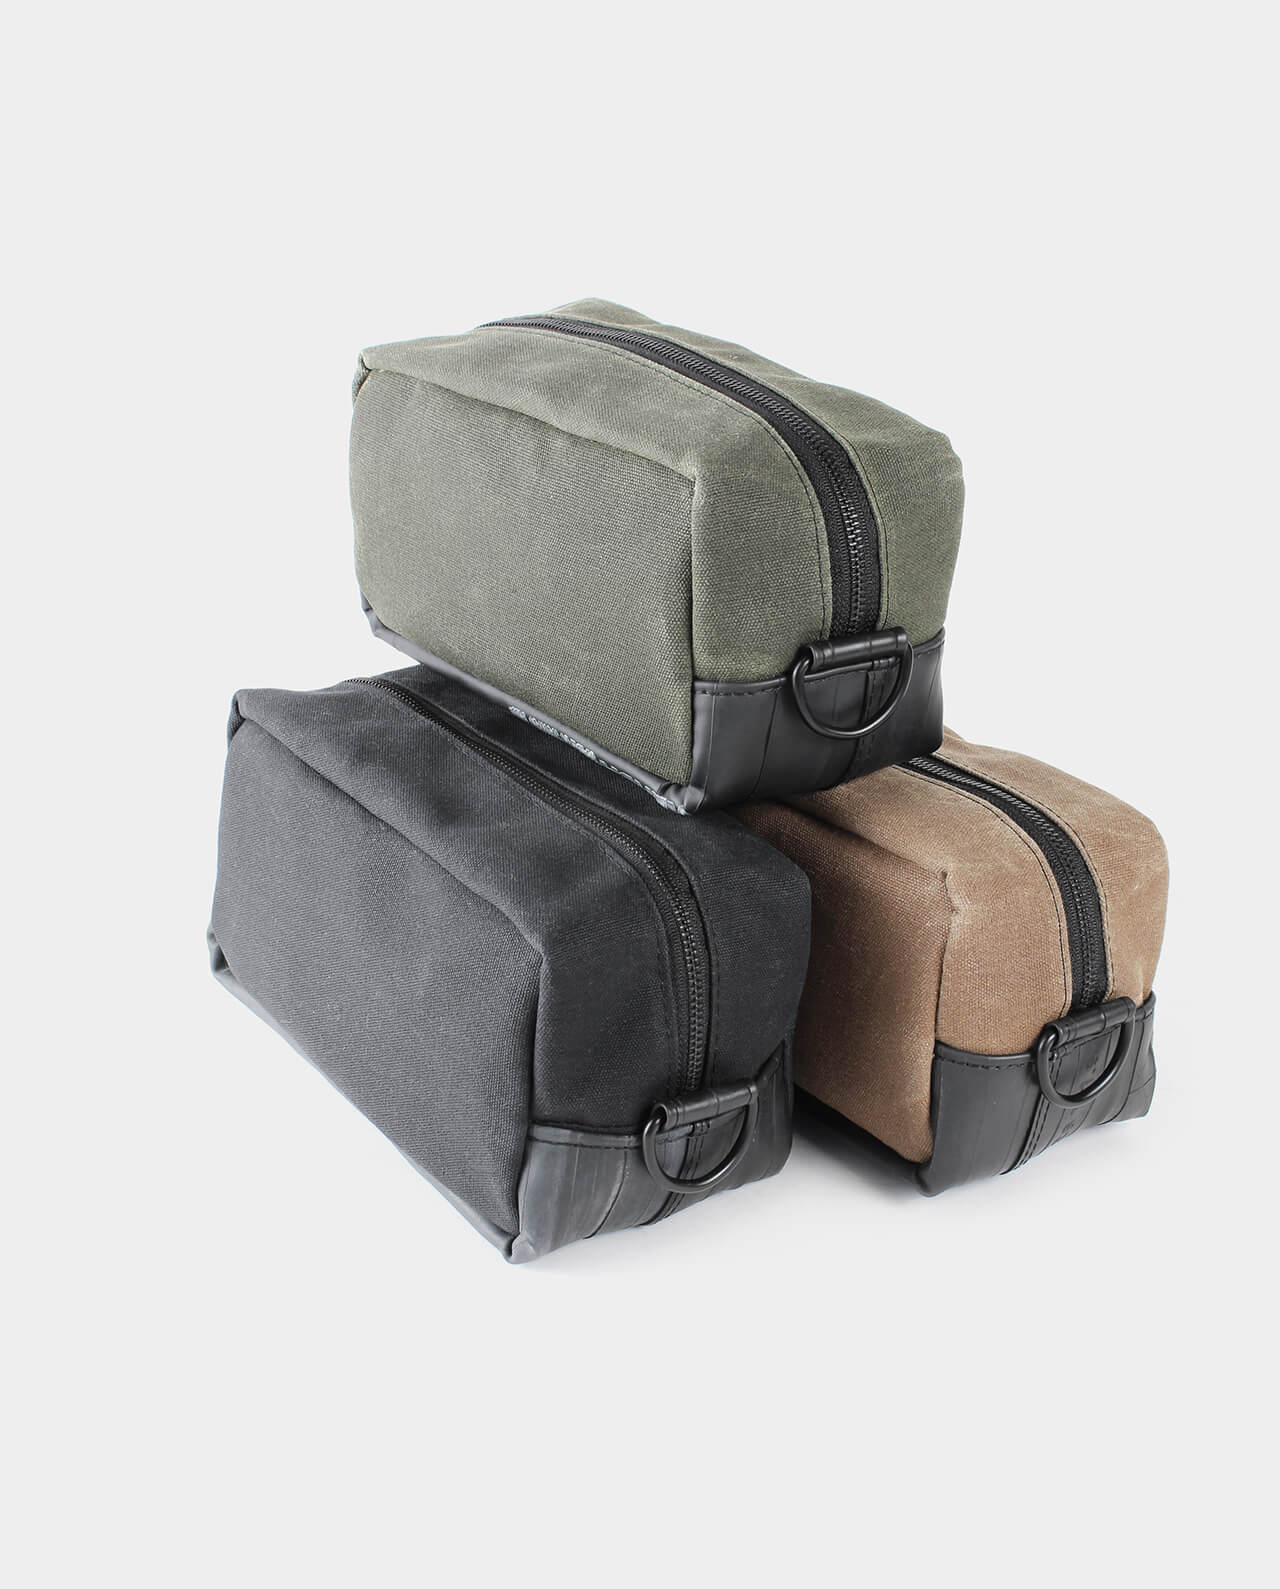 waxed canvas travel dopp kit